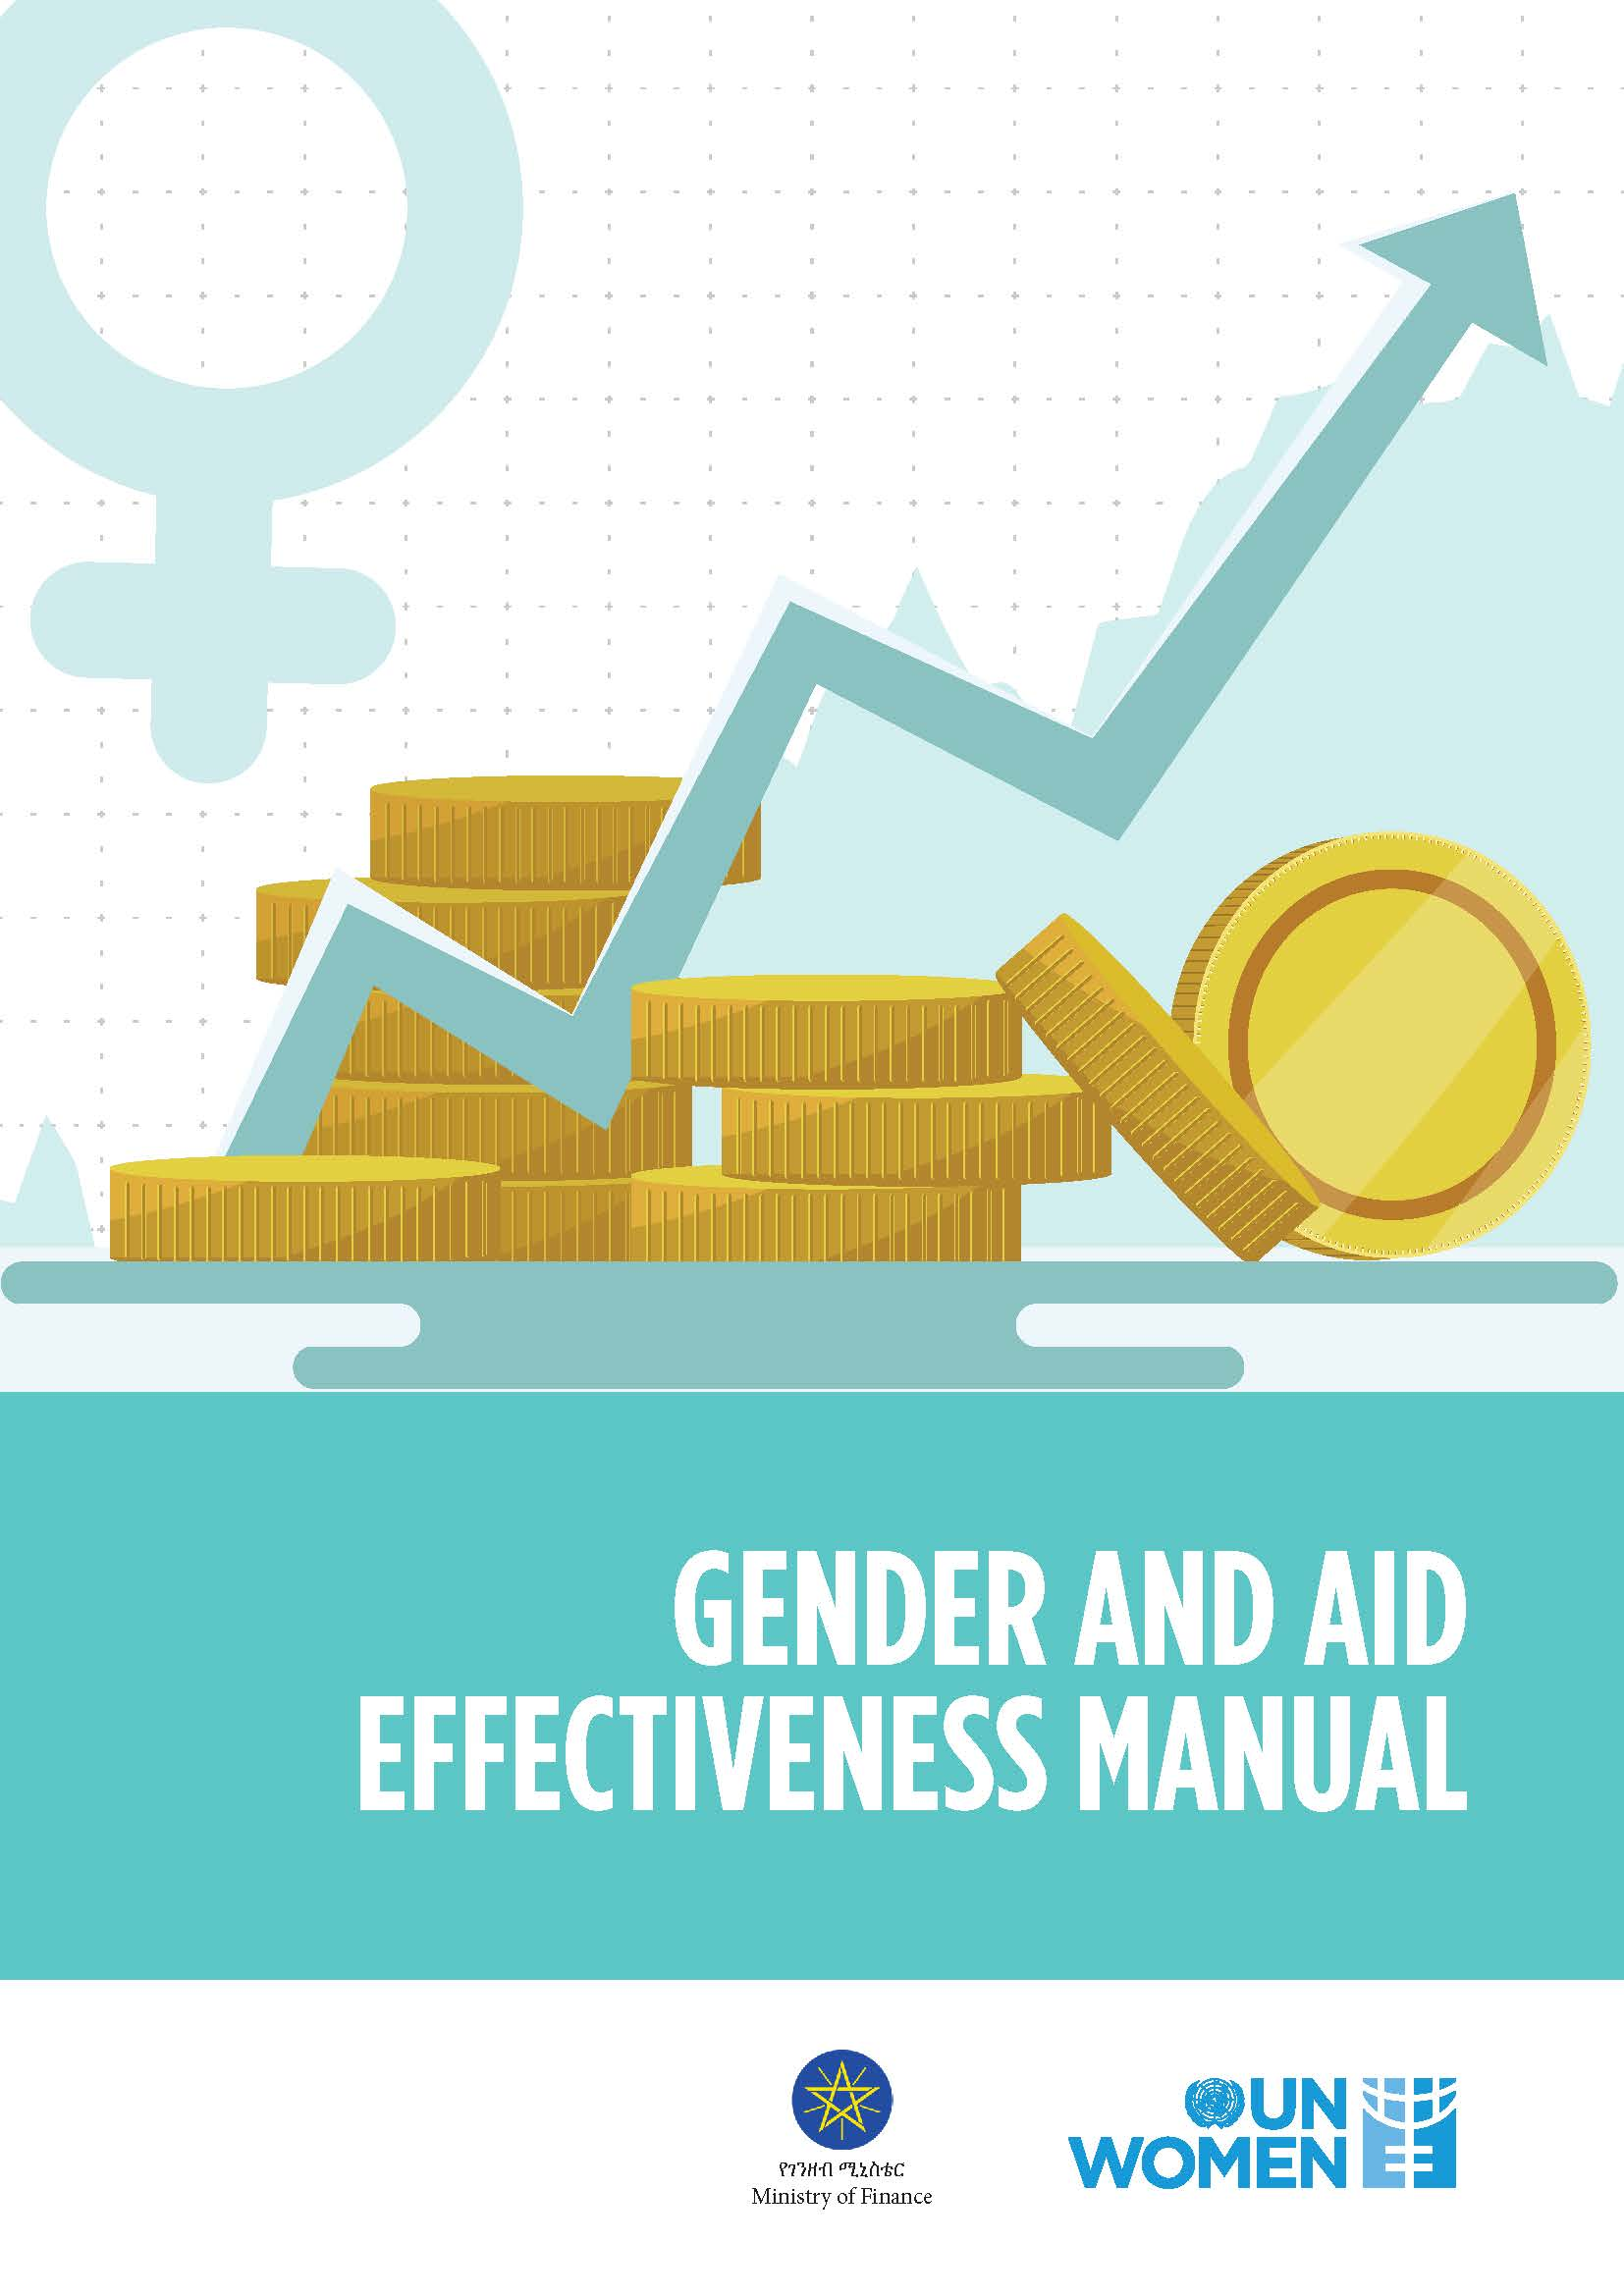 Gender and Aid Effectiveness Manual